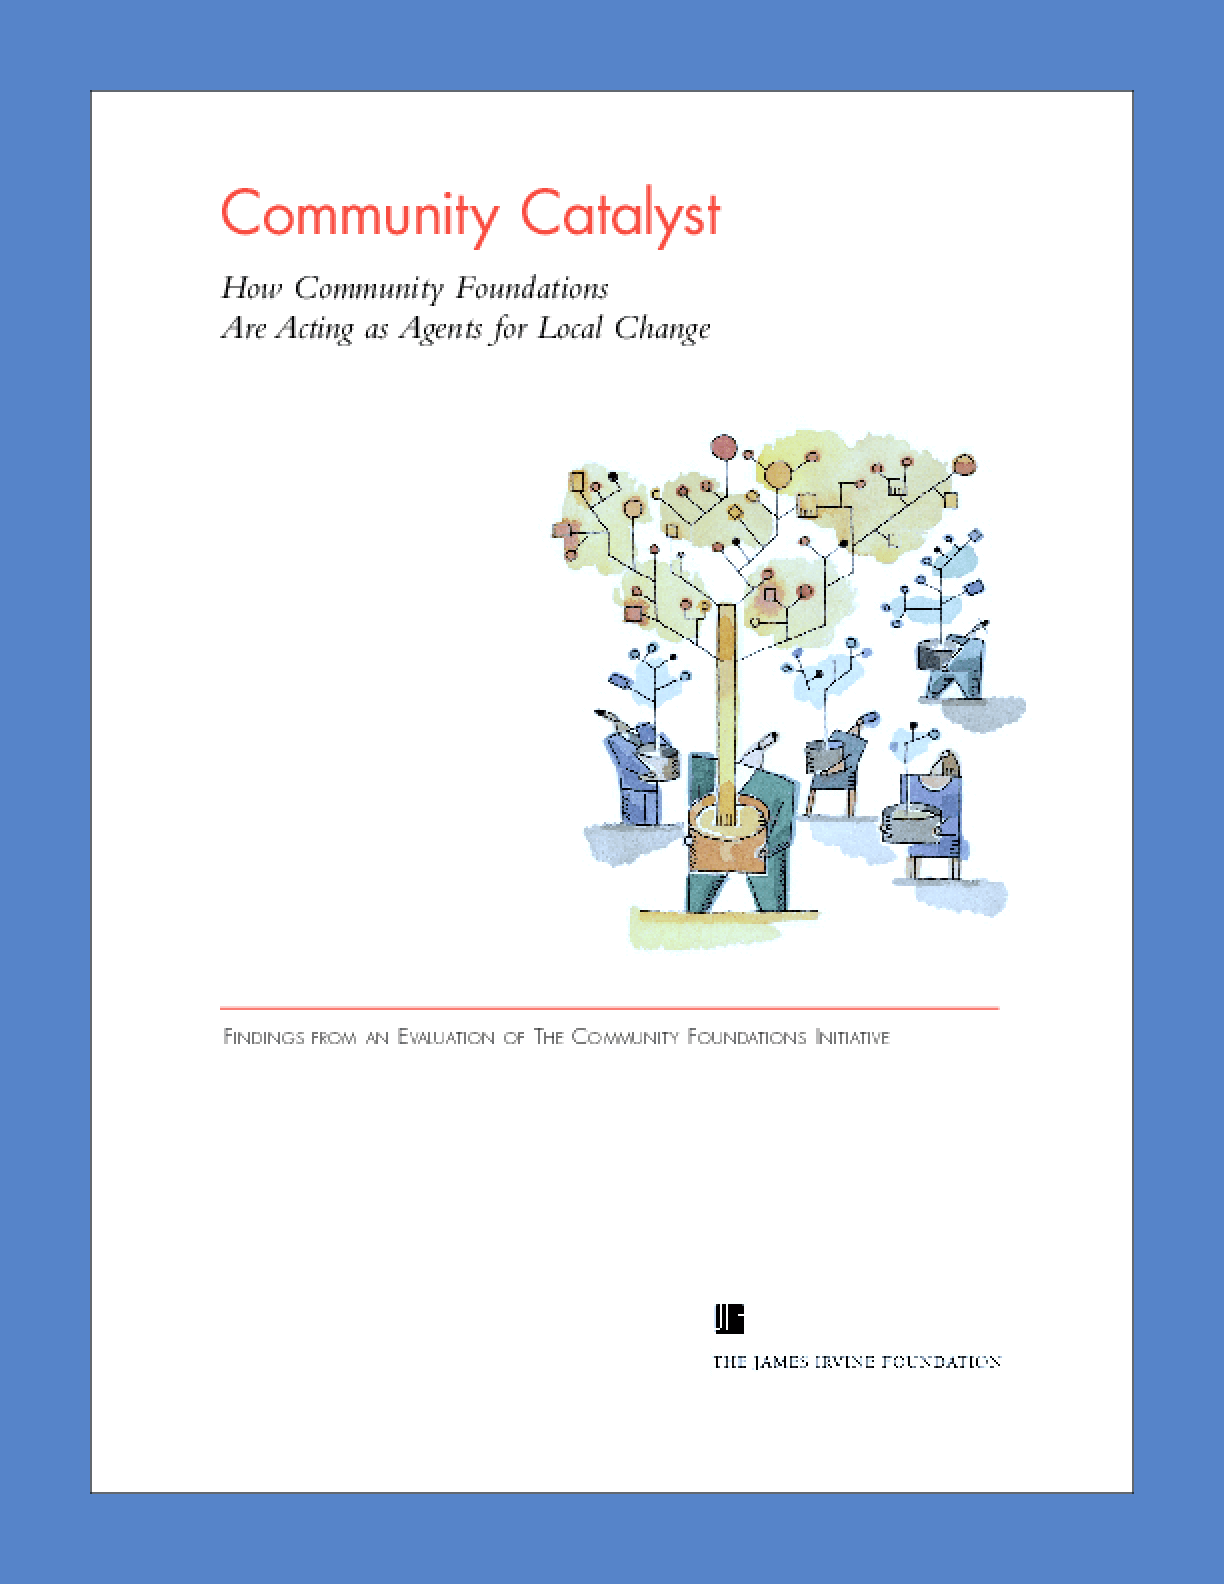 Community Catalyst: How Community Foundations Are Acting as Agents for Local Change